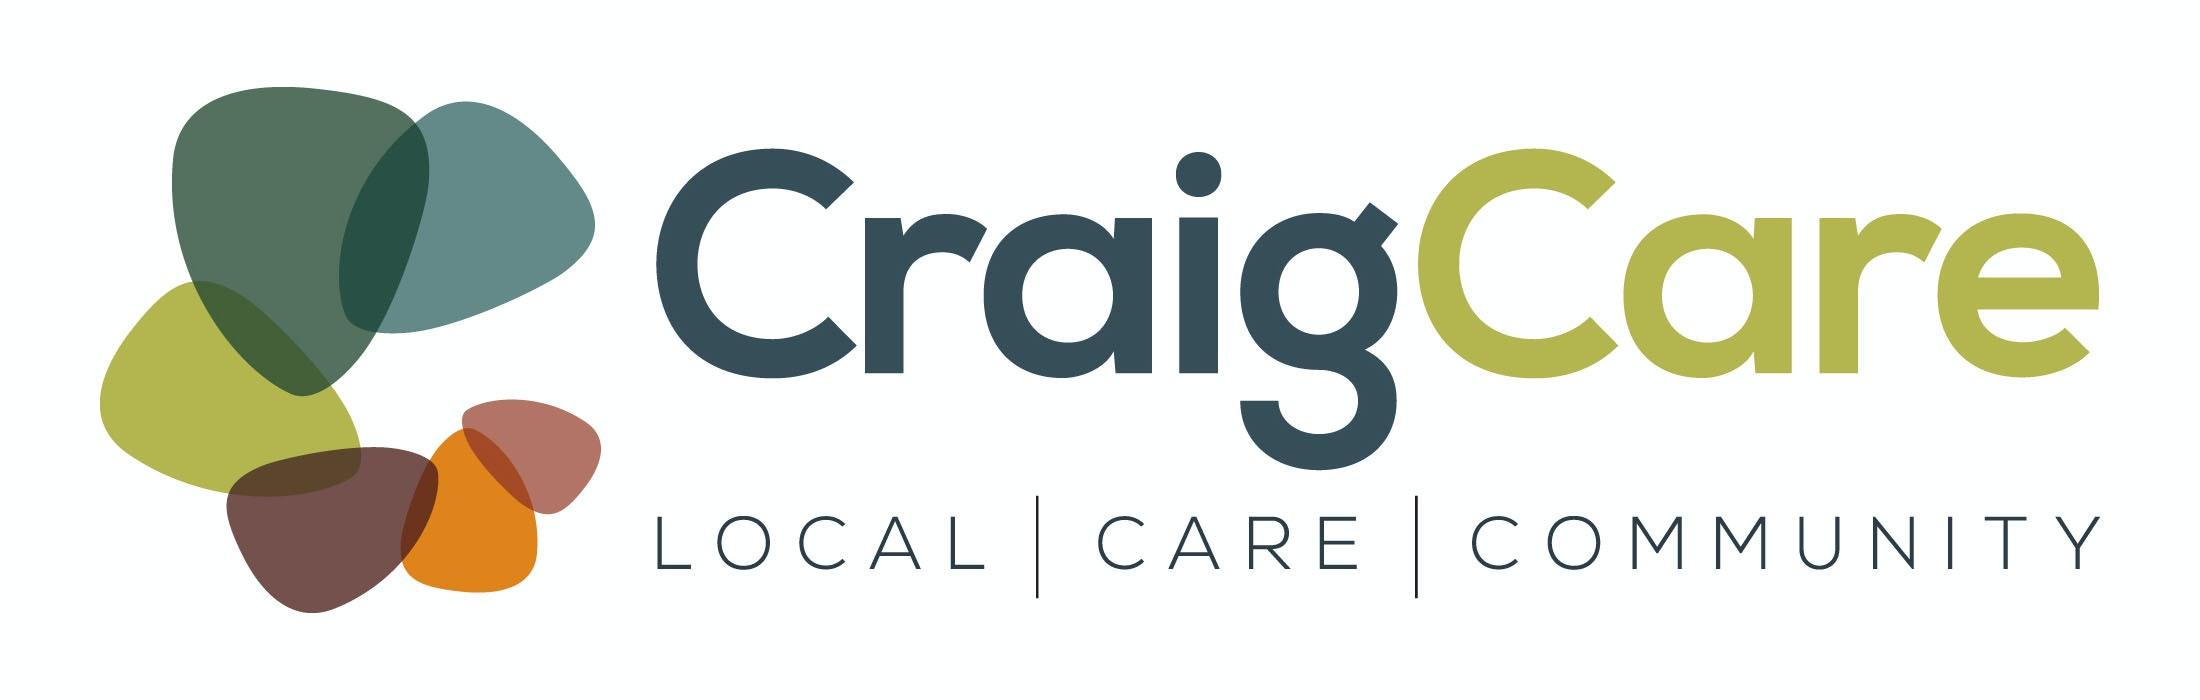 CraigCare Mornington logo